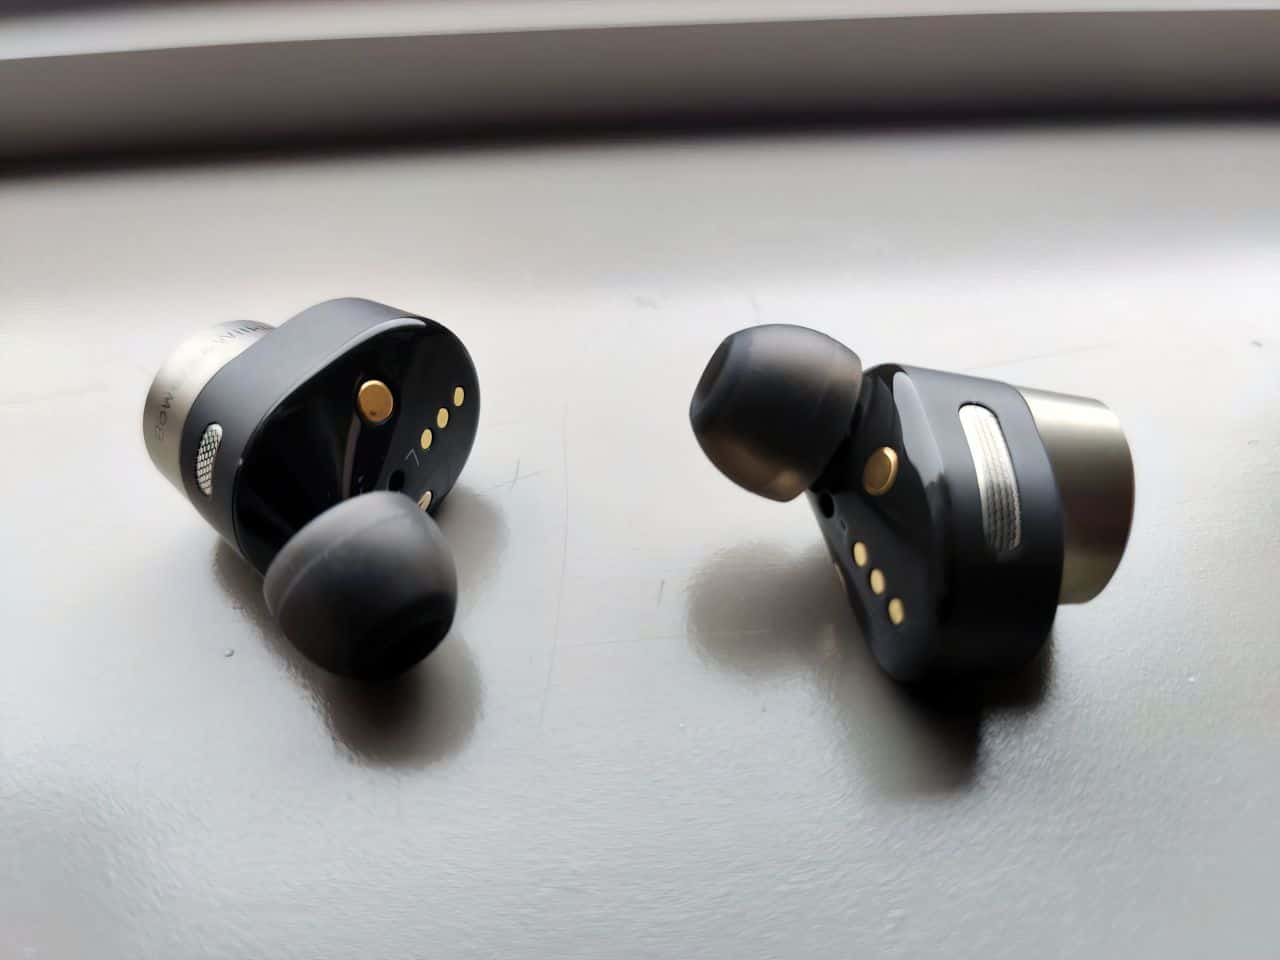 bowers and wilkins PI7 headphones